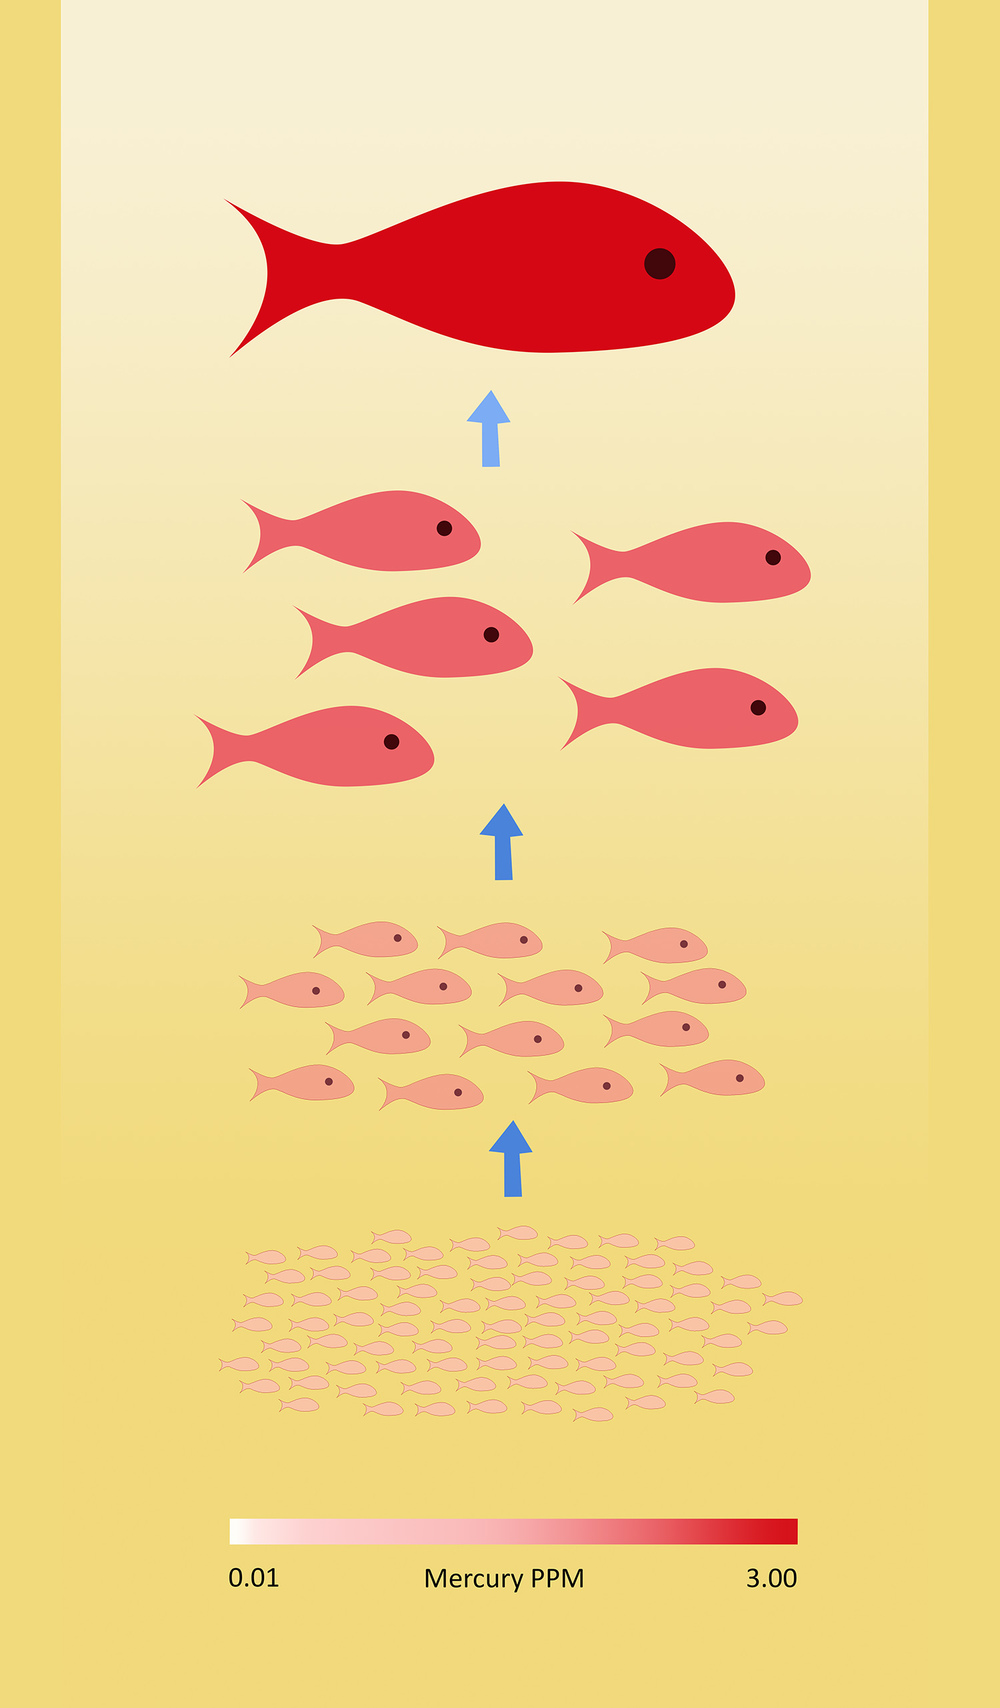 Bioaccumulation of mercury in the marine food chain